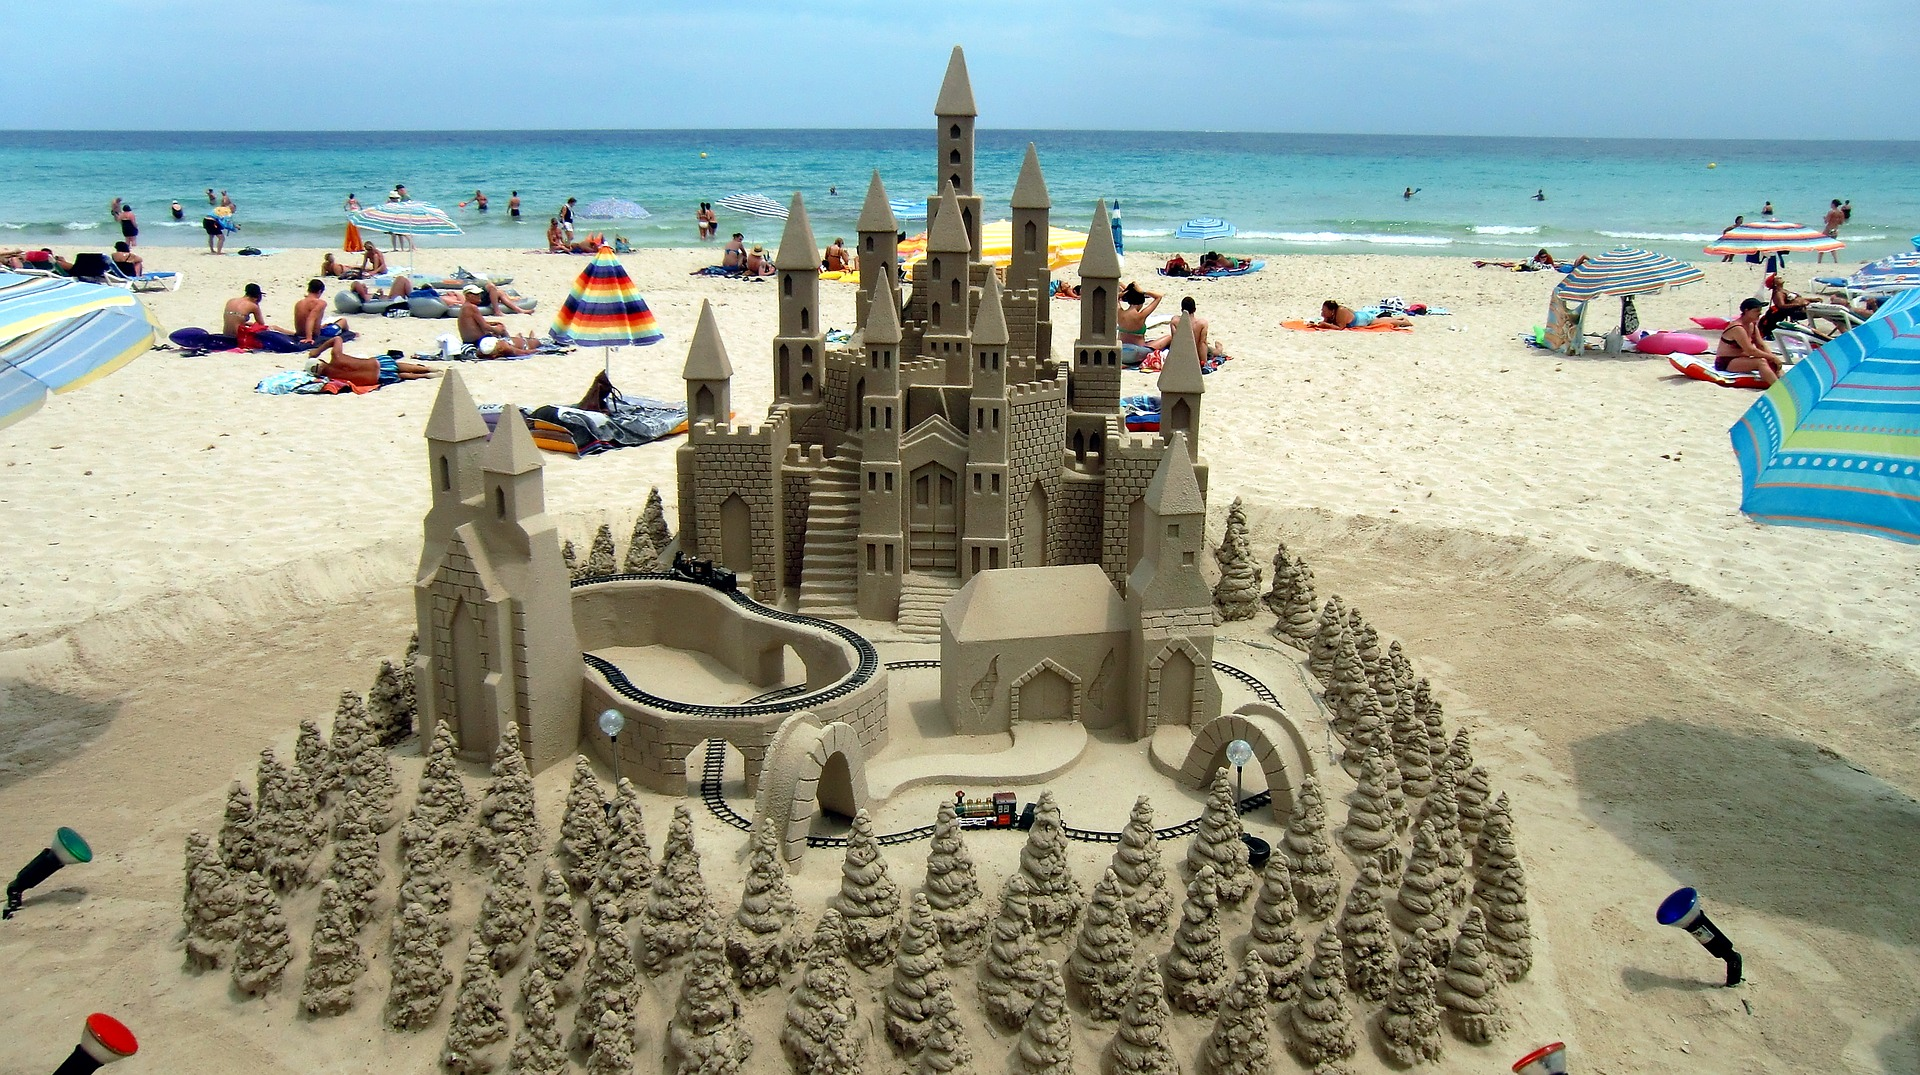 A sand castle with towers and a train track and sand trees